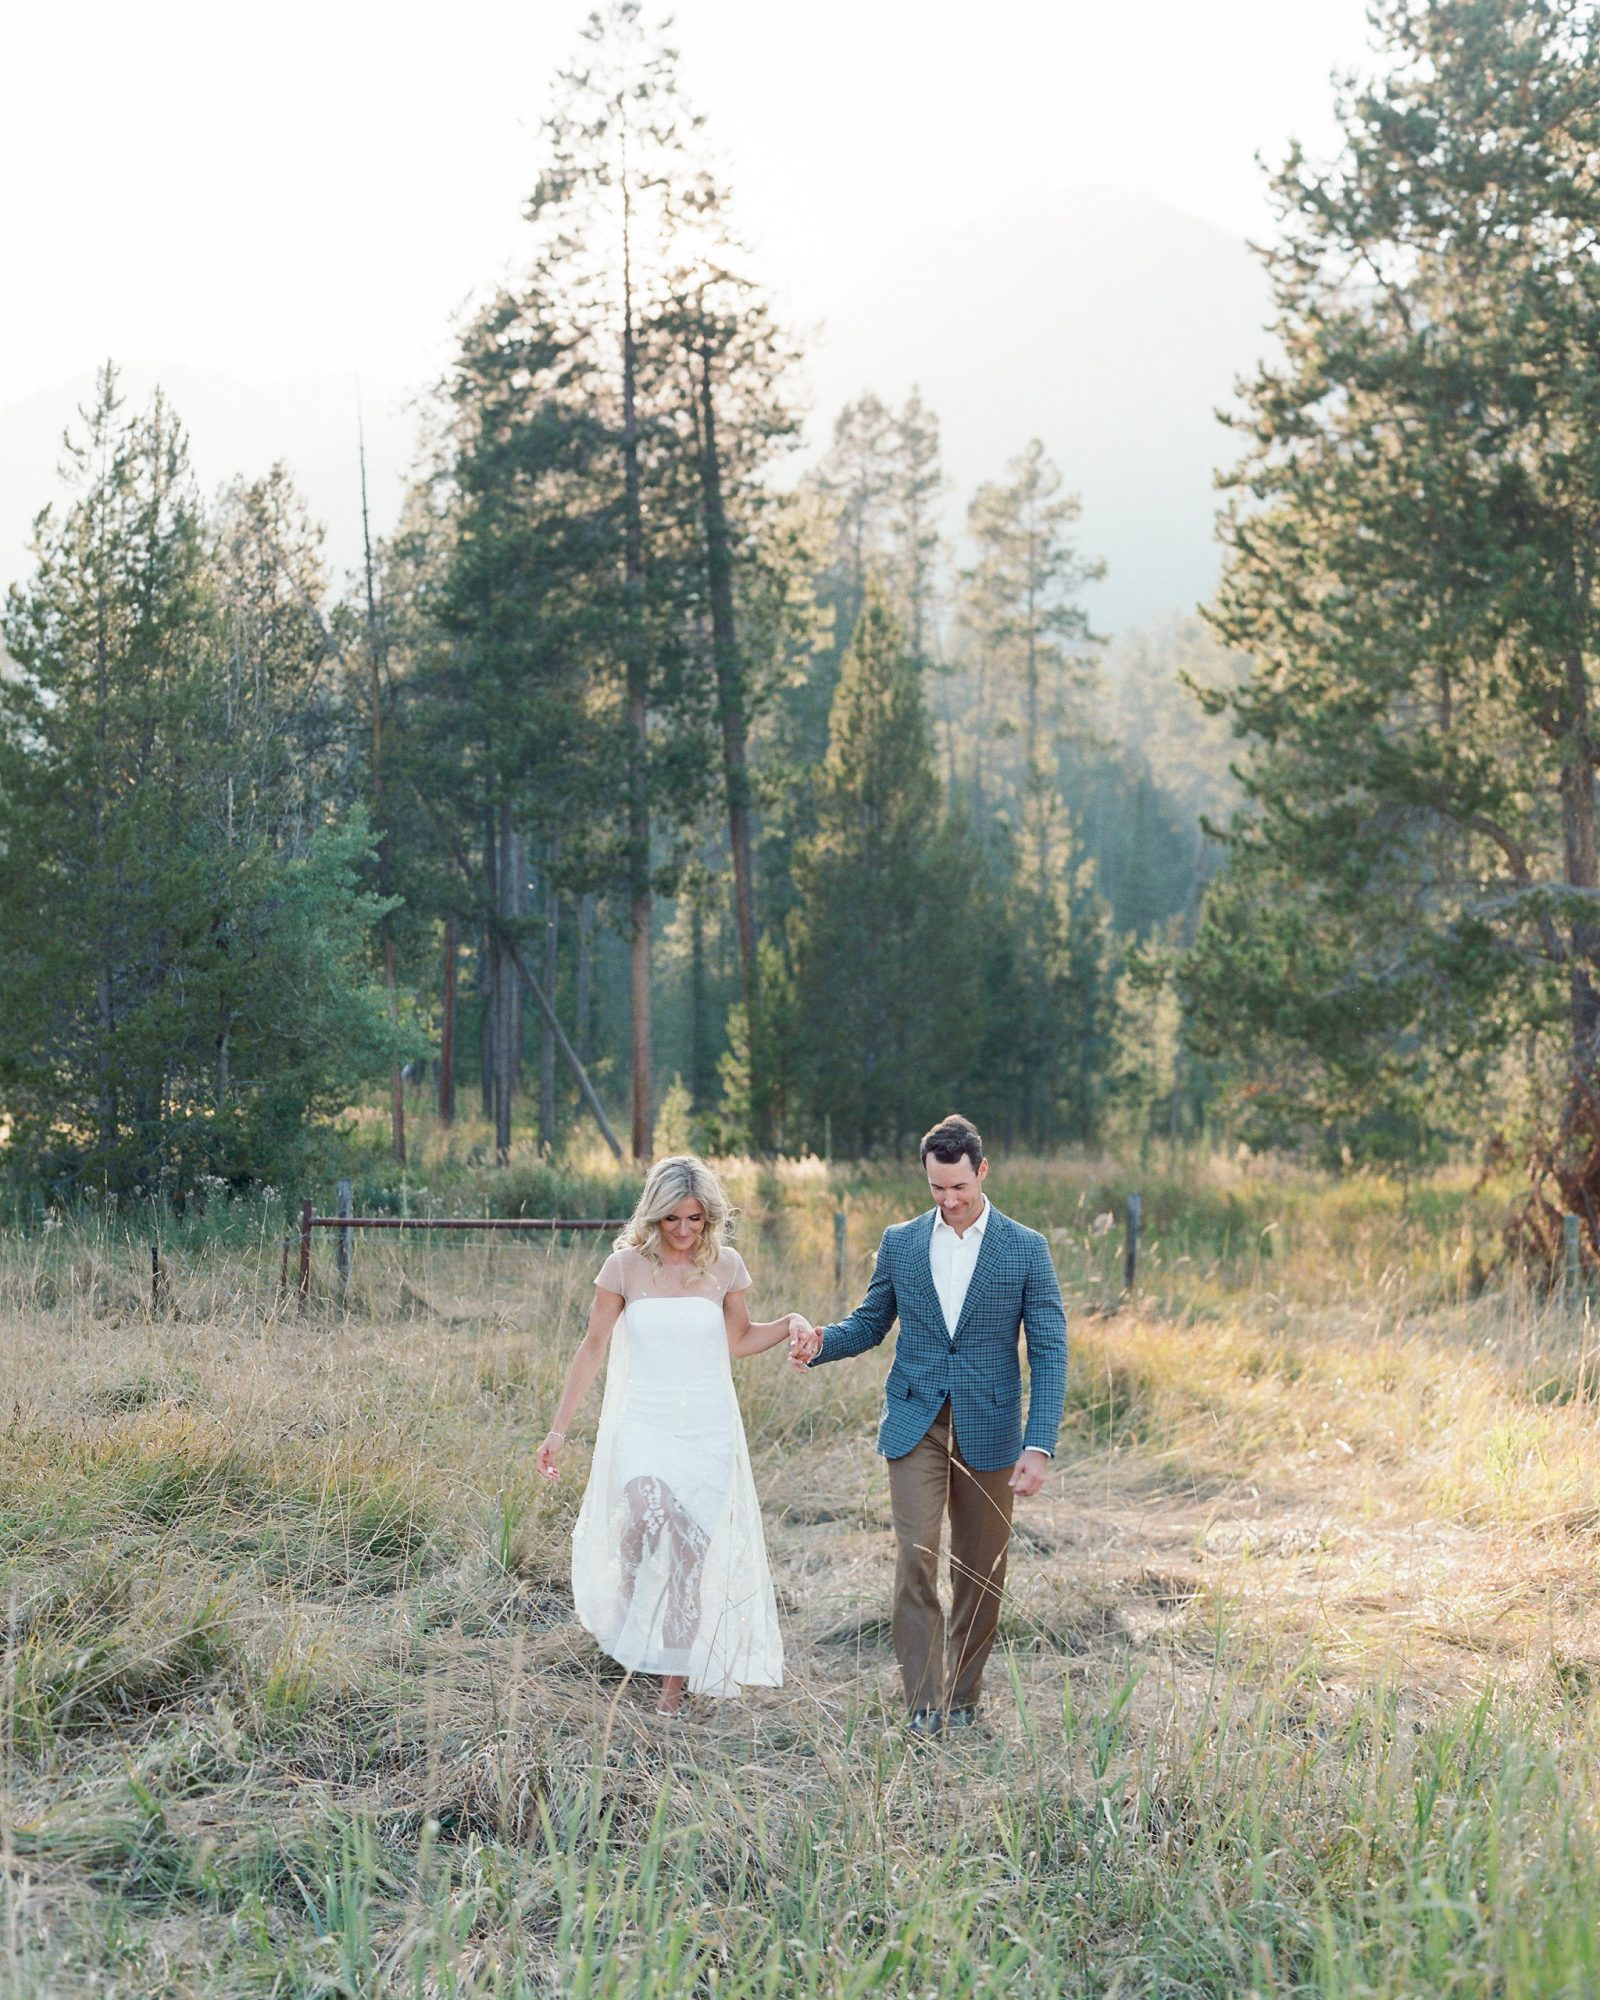 bride groom walking in wooded grass area